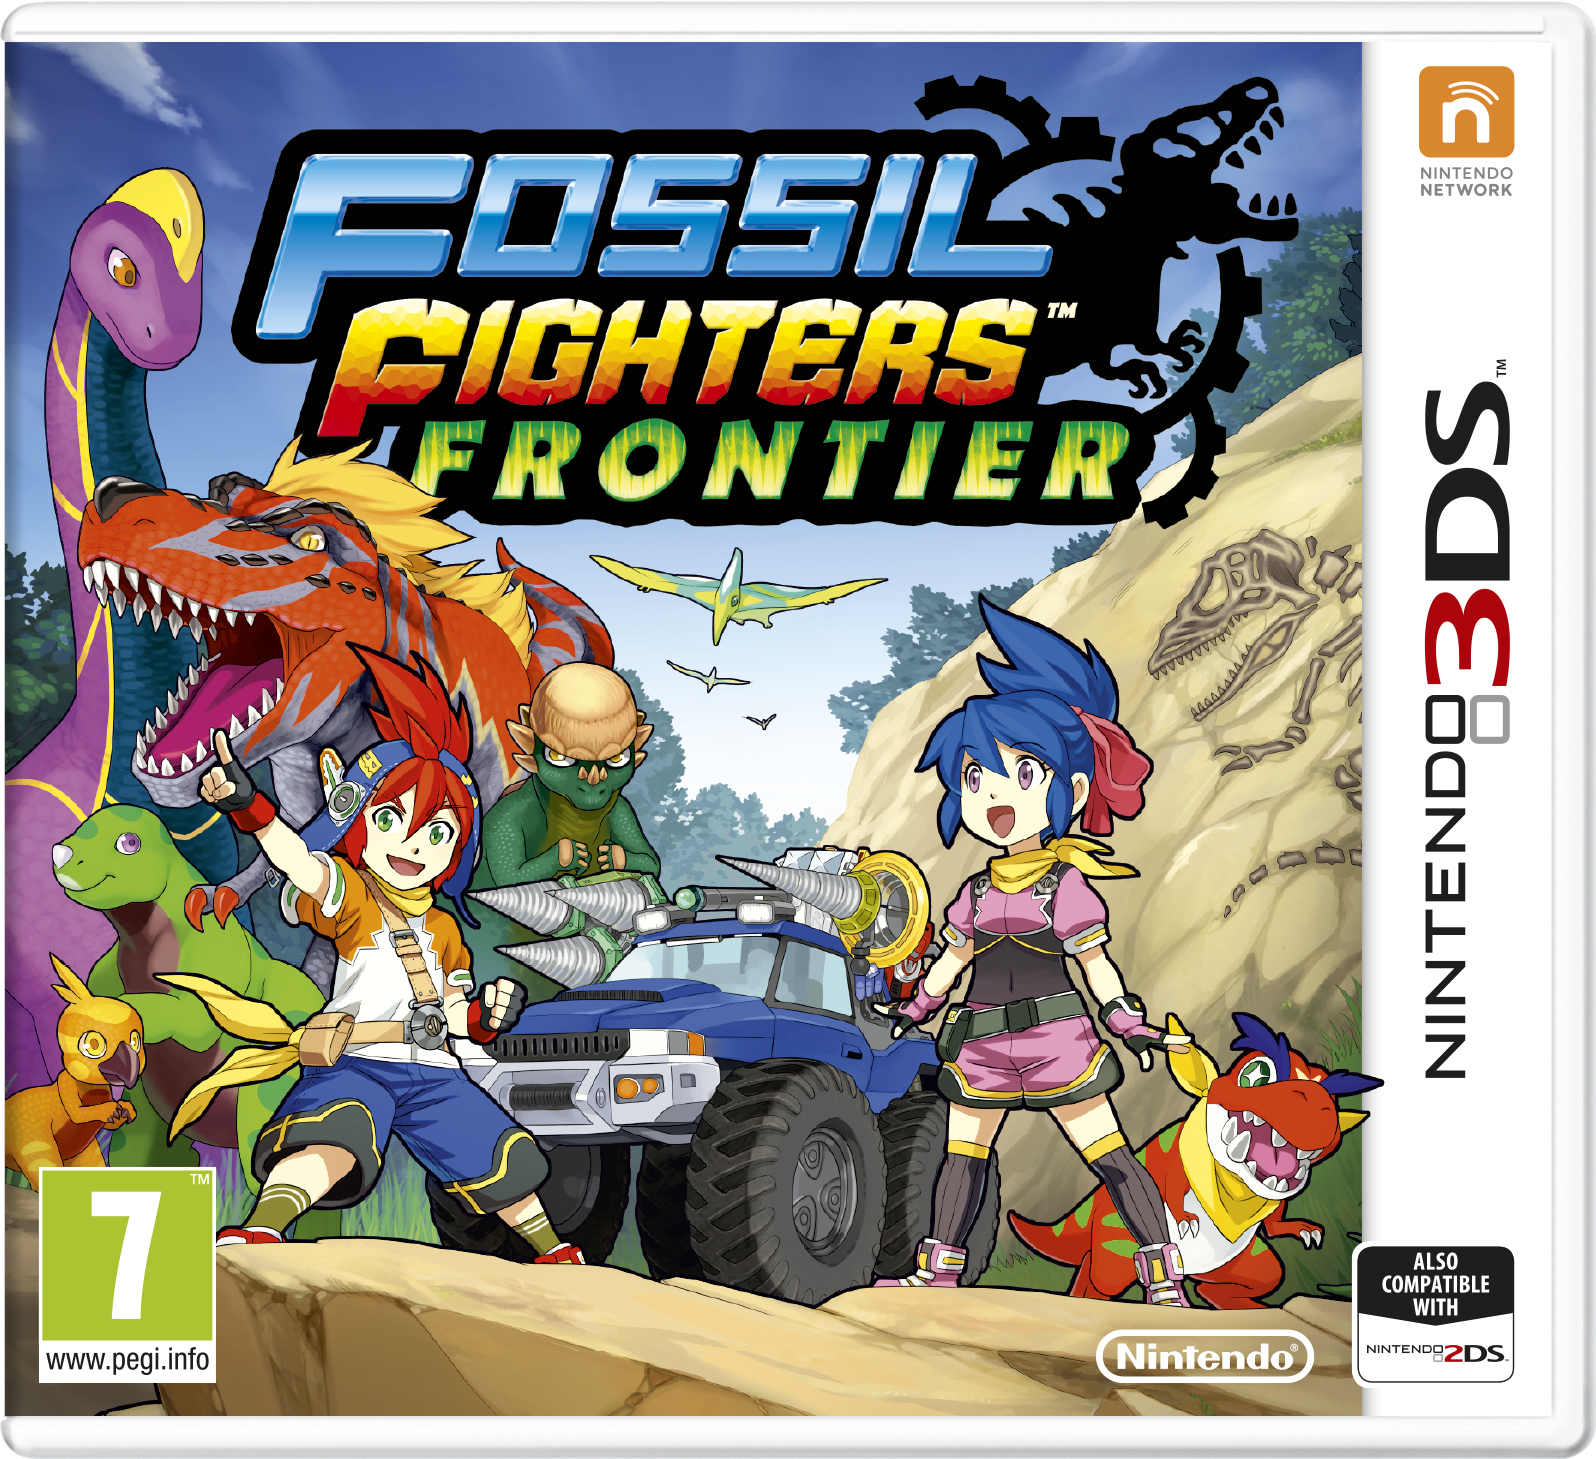 Fossil Fighters: Frontier